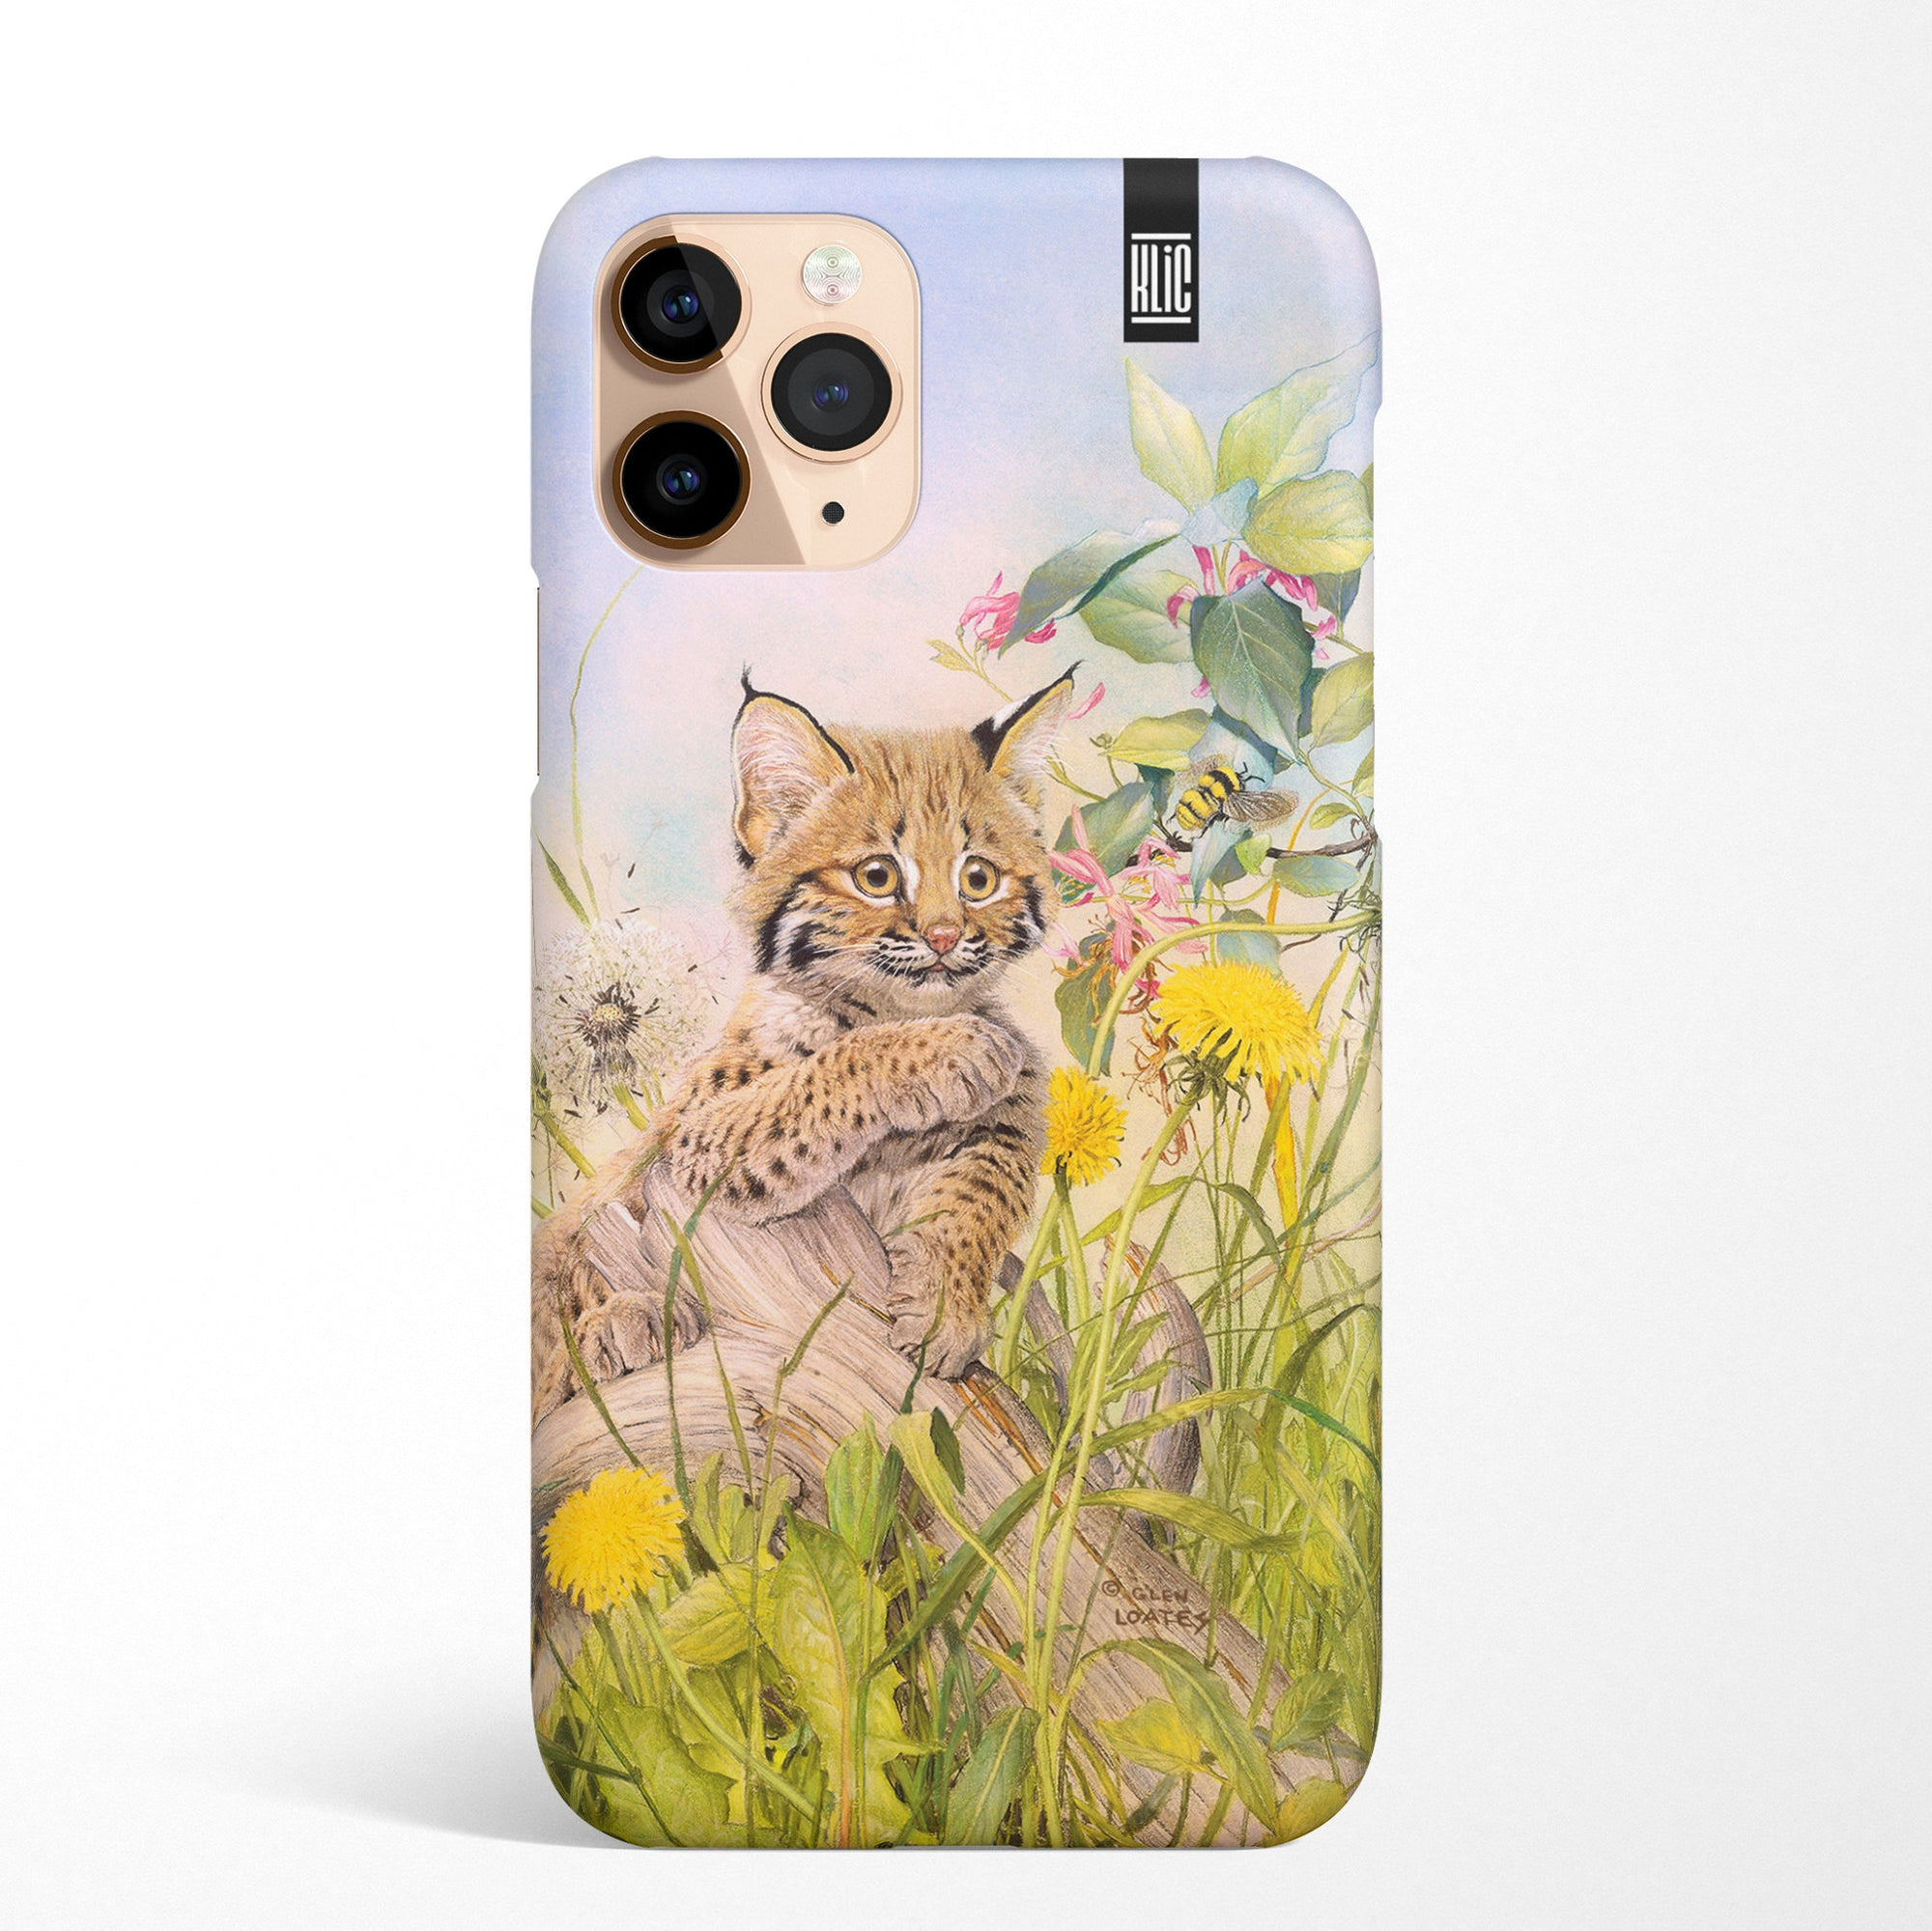 Cougar with bumble bee on a Glen Loates KLiC phone case